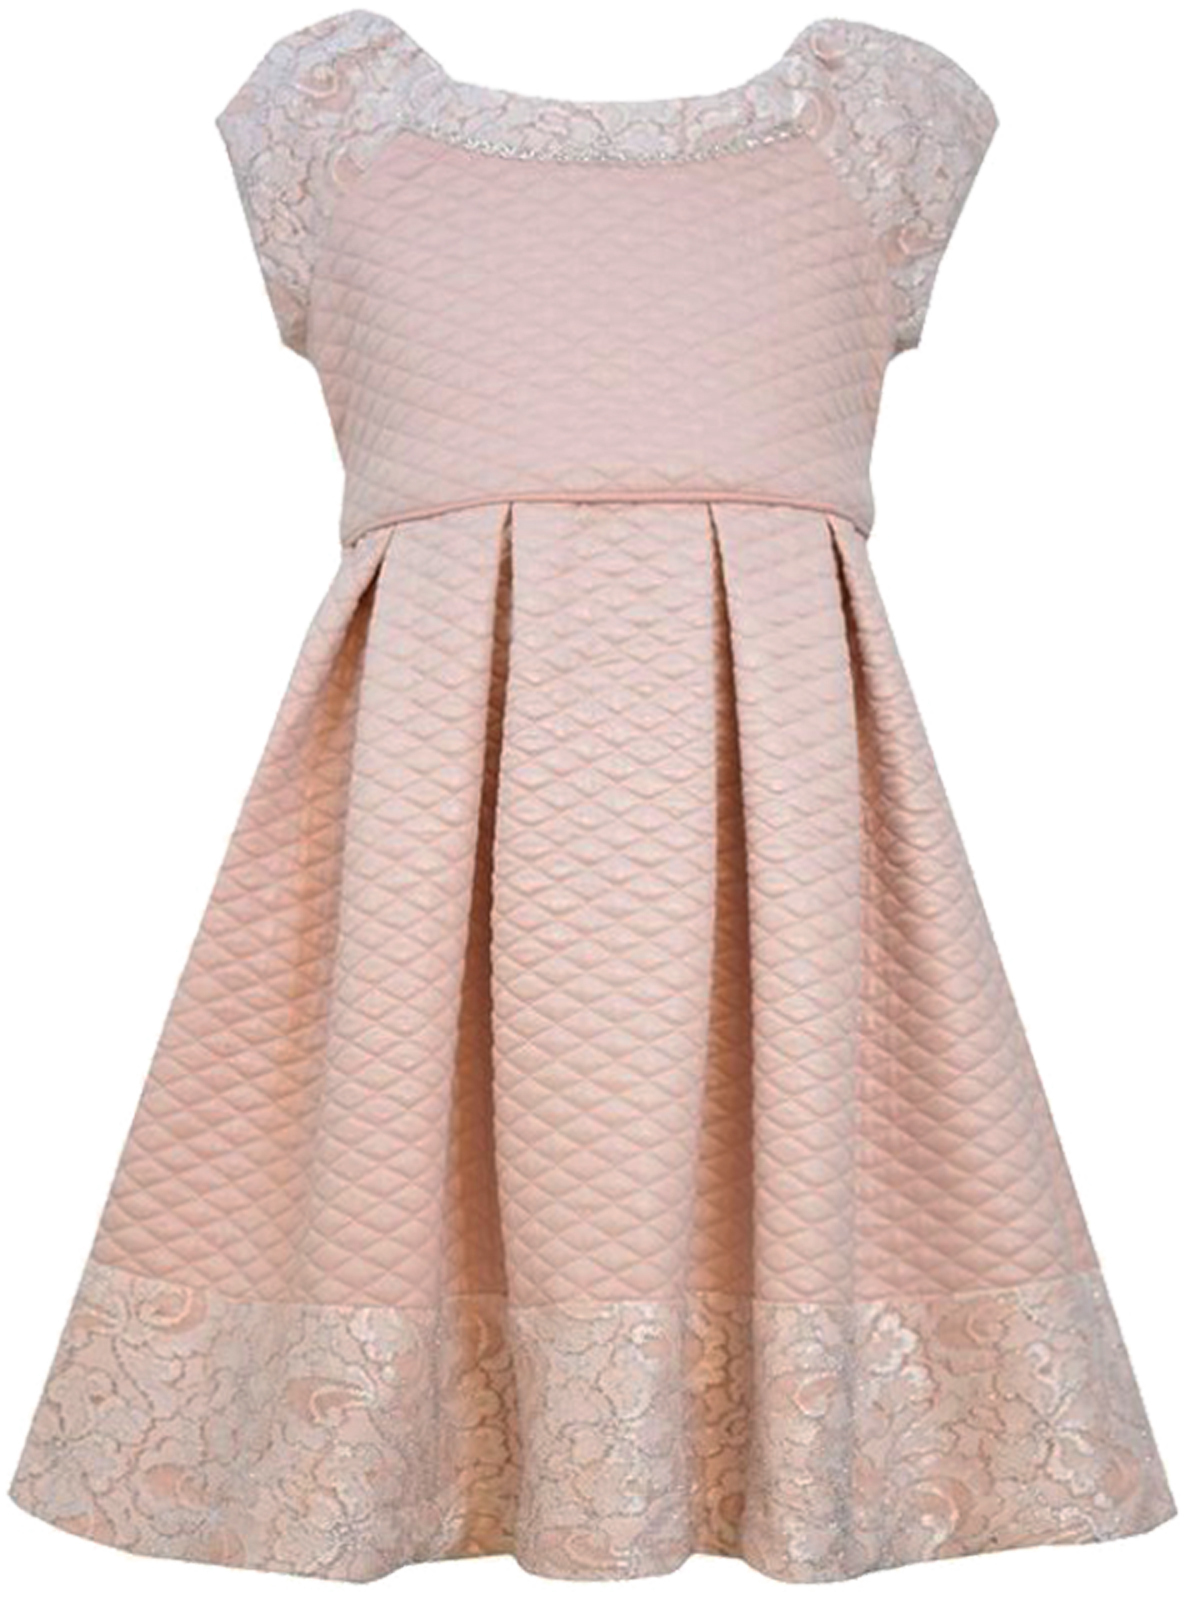 Bonnie Jean Little Girls 2T-6X Pink Foil and Lace Quilted Box Pleat Social Dress